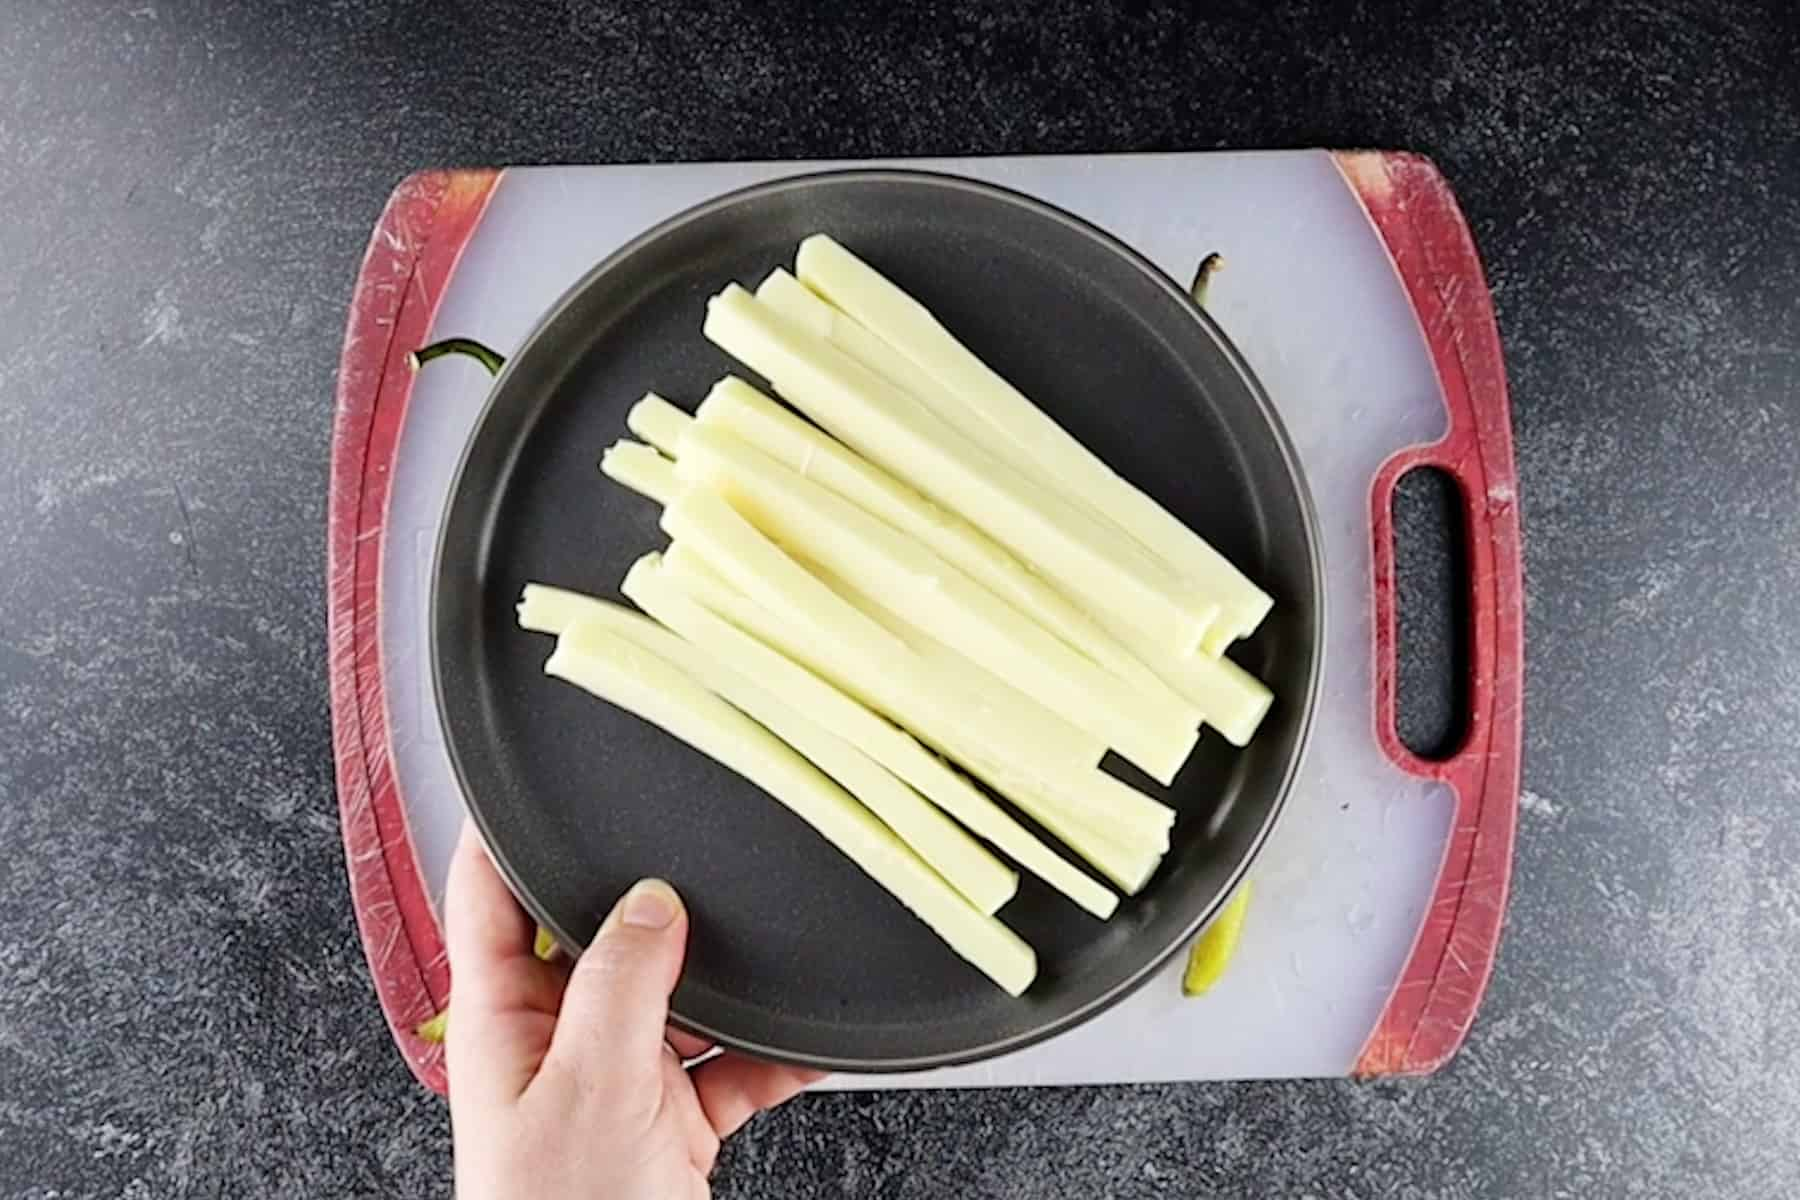 cheese cut into strips on plate